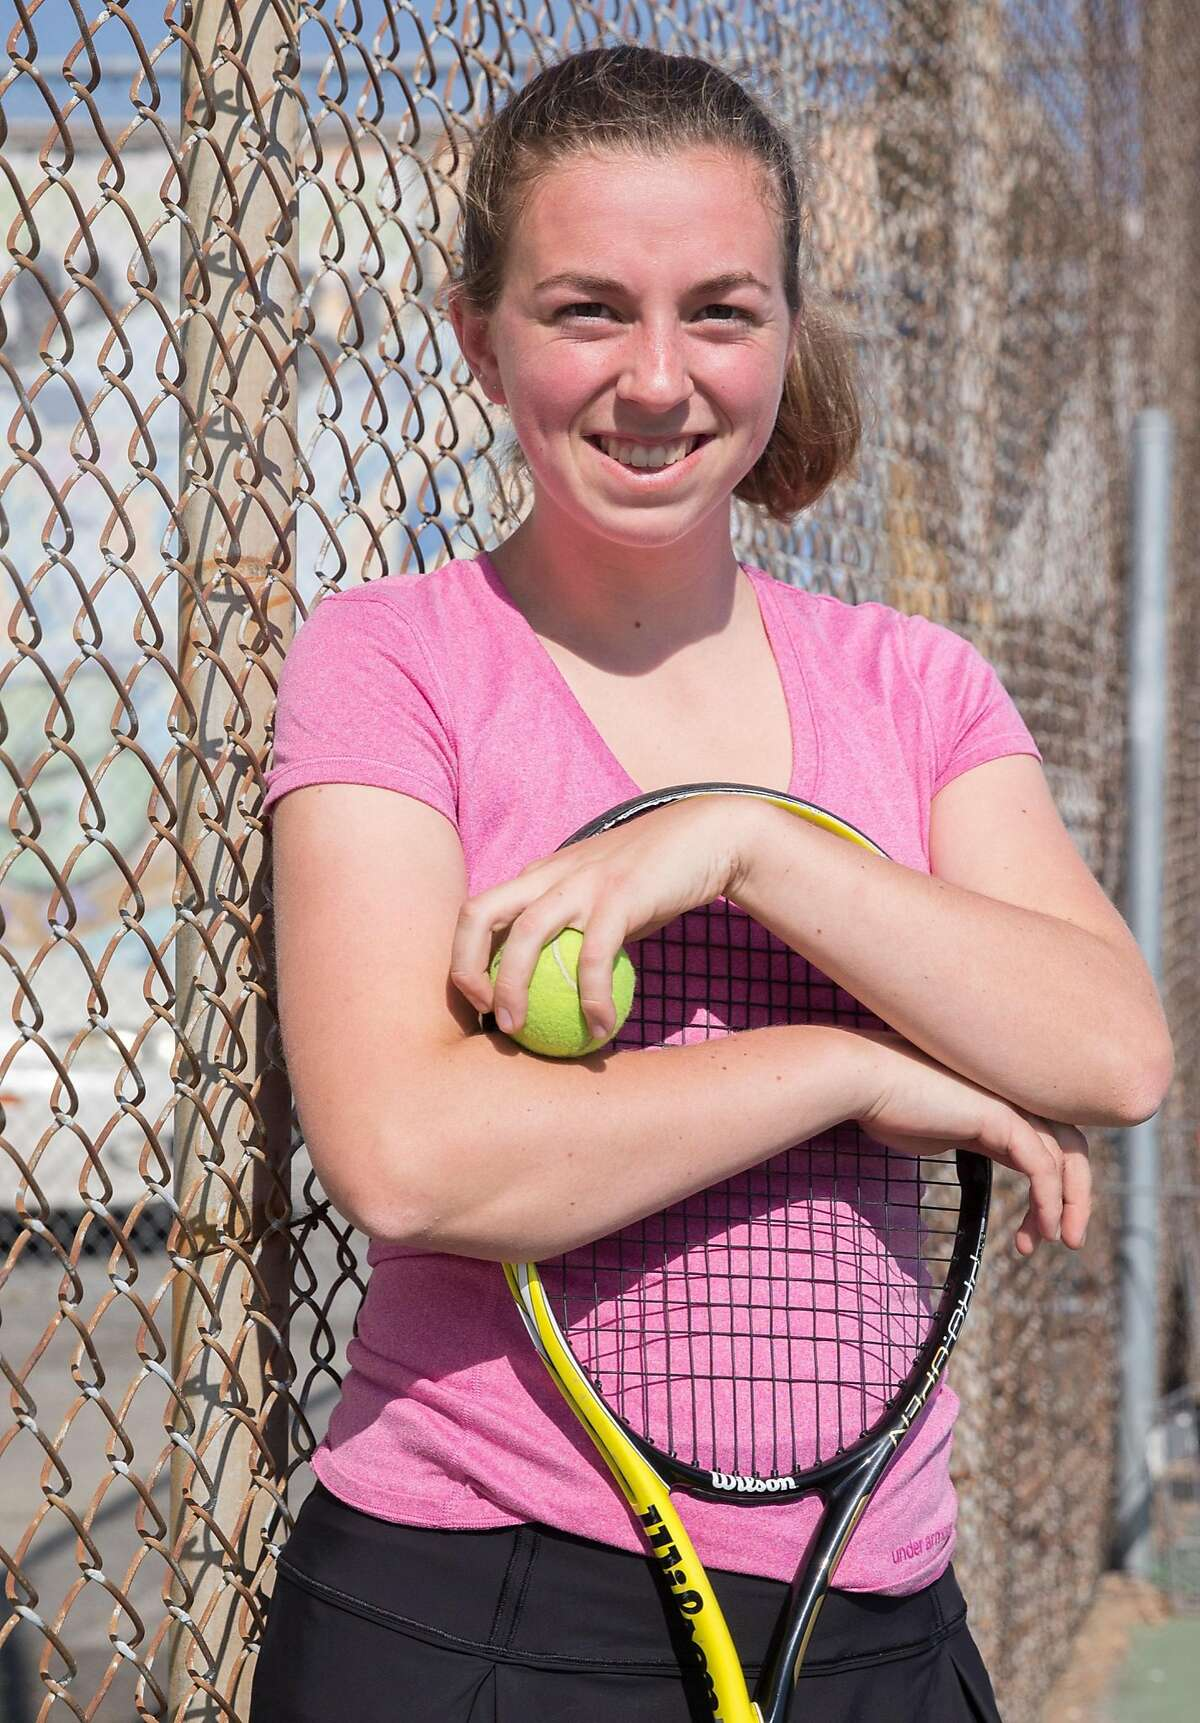 Oakland Tech student and tennis player poses for a portrait during practice at Oakland Tech in Oakland, Calif. Thursday, Aug. 30, 2018.